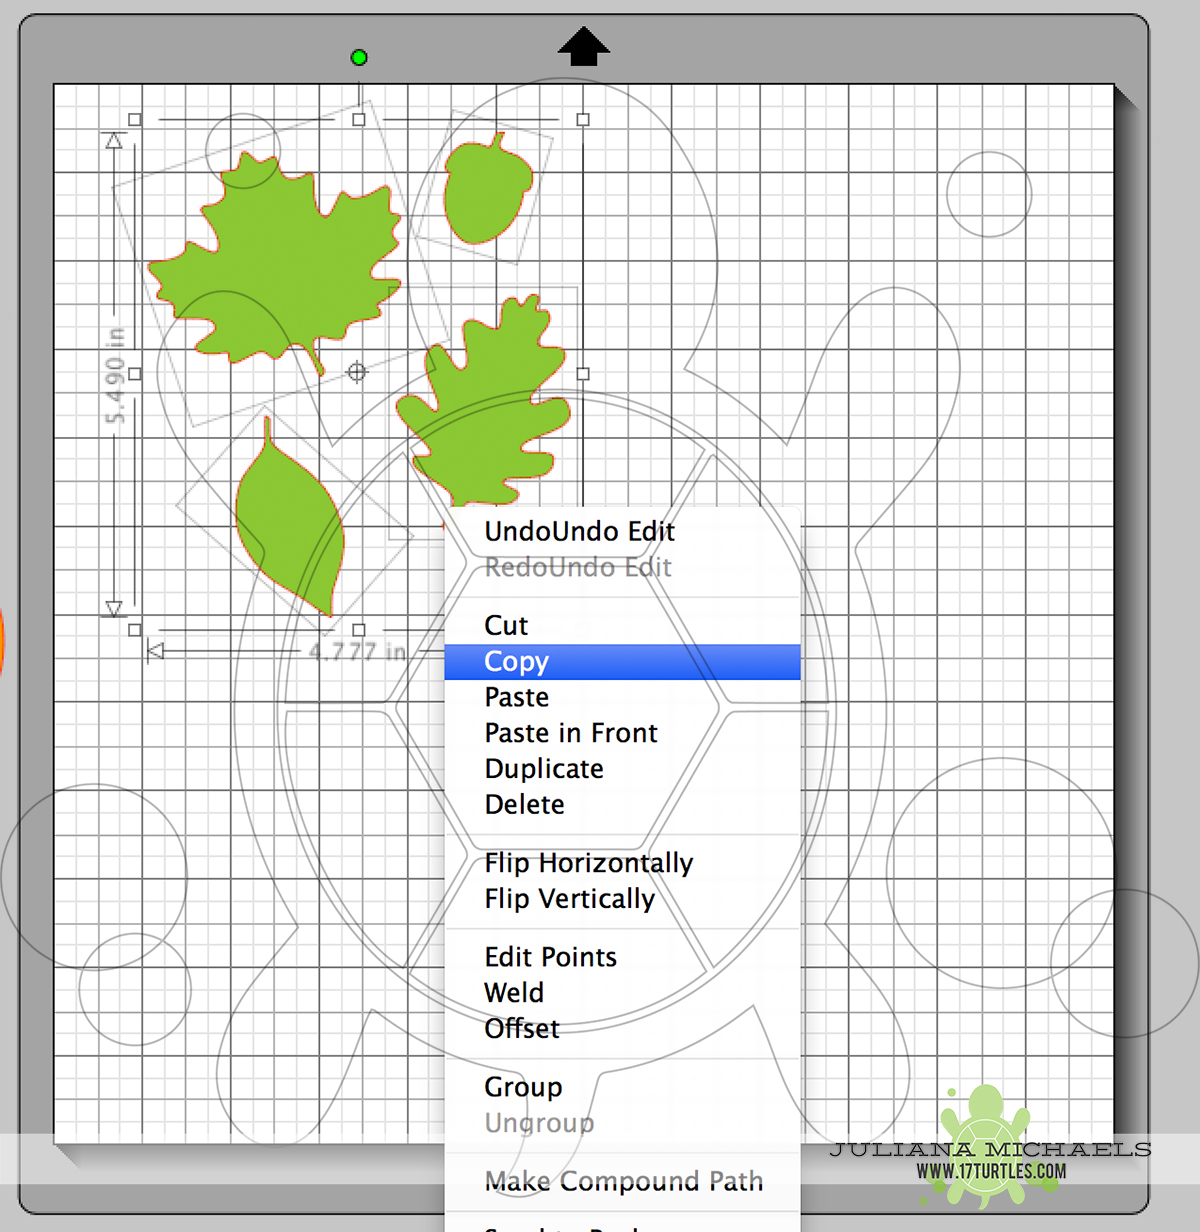 Copying images of a Digital Cut File Leaves & Acorn by Juliana Michaels 17turtles